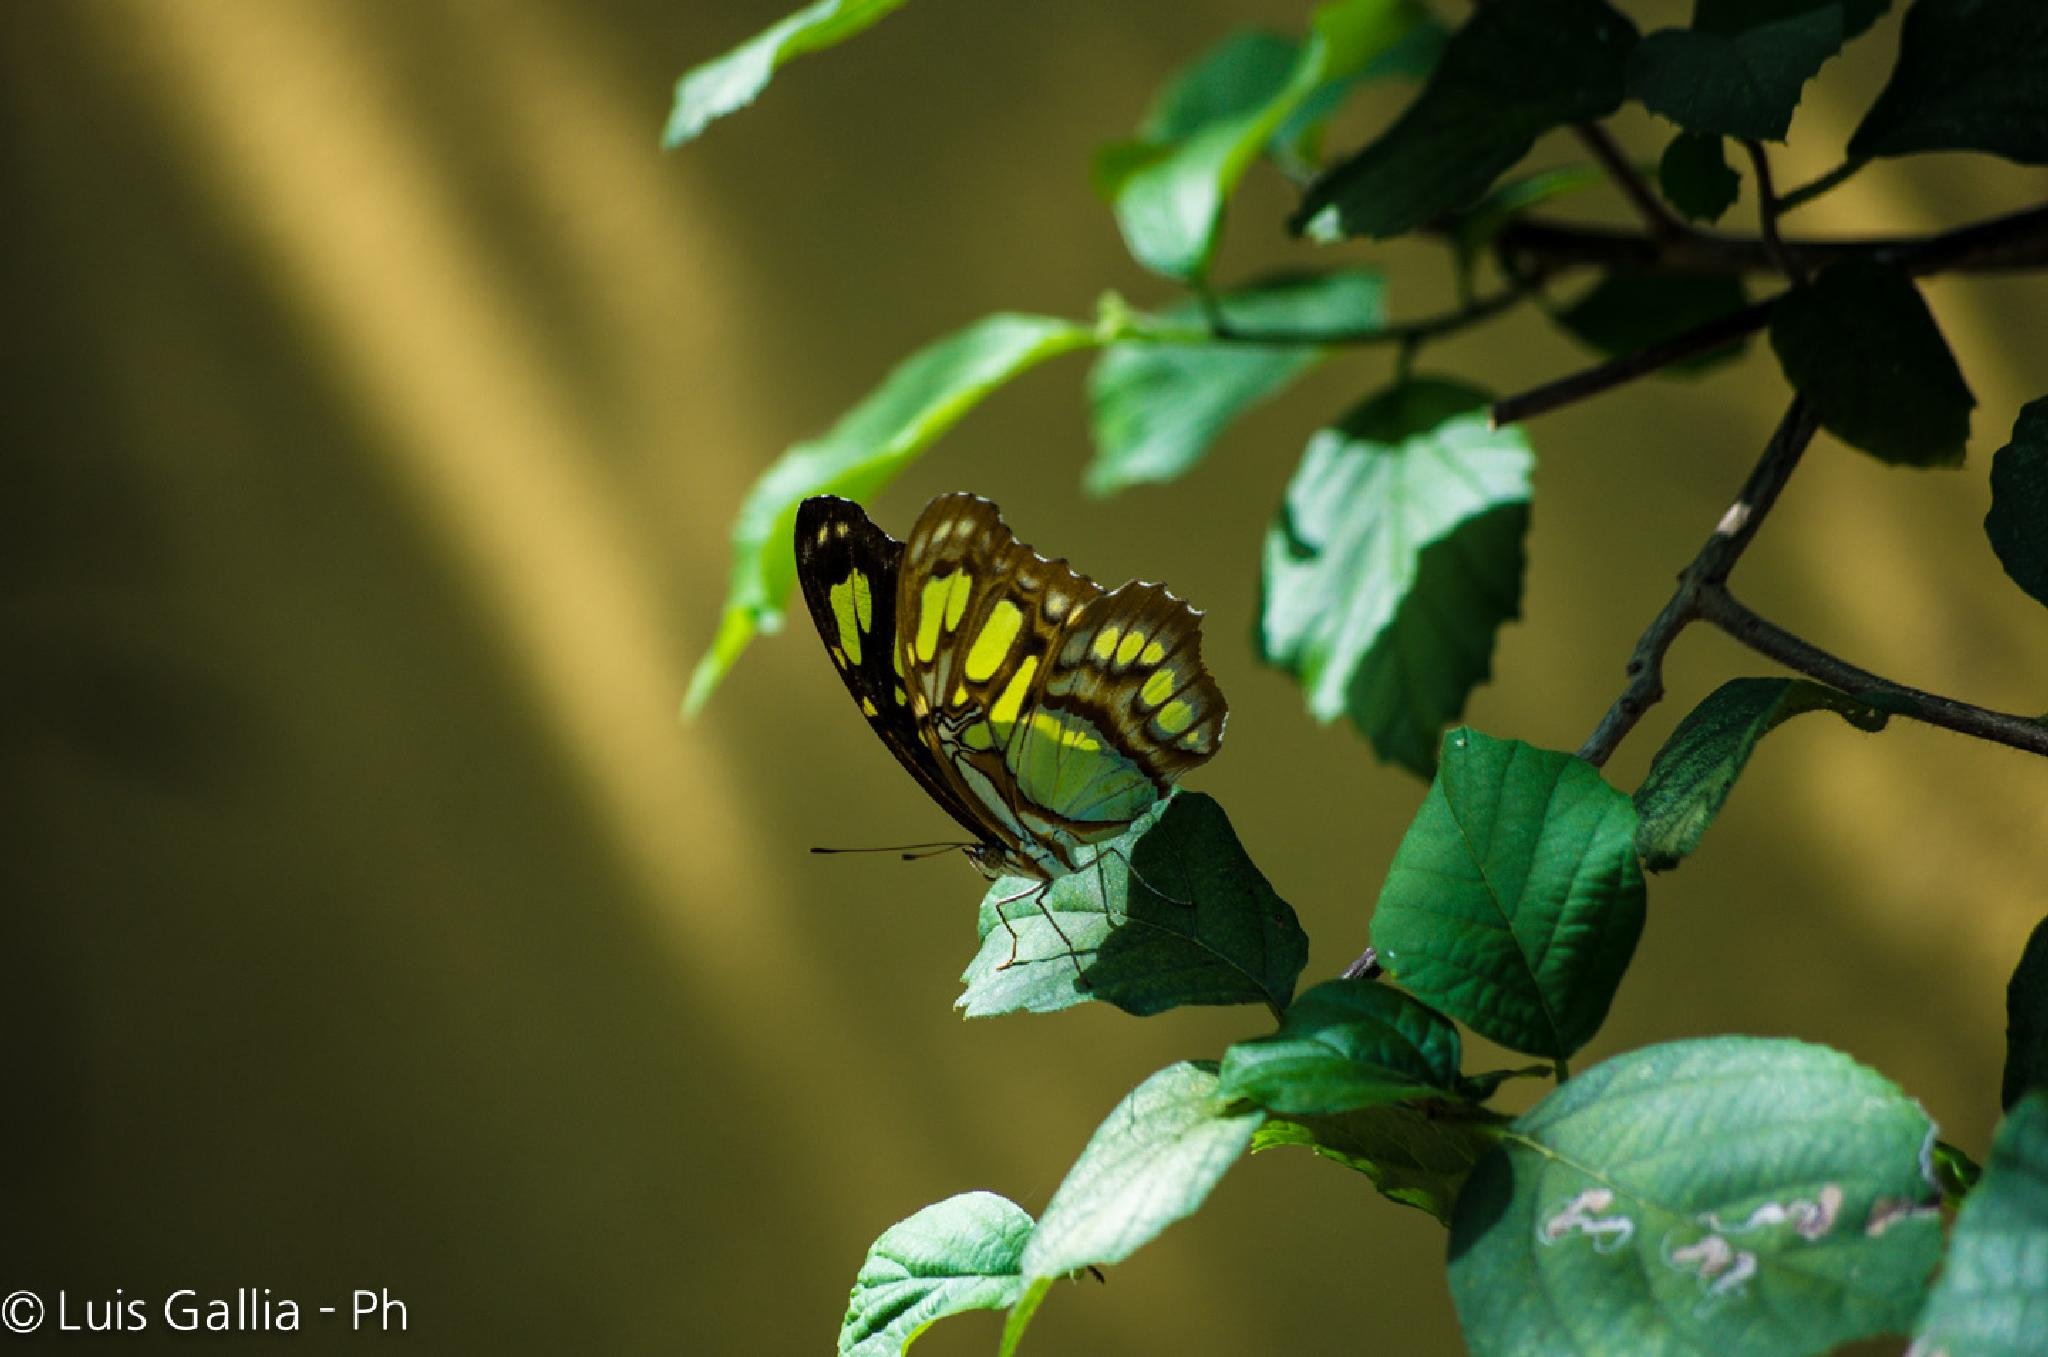 Butterfly by Luis Gallia Ph